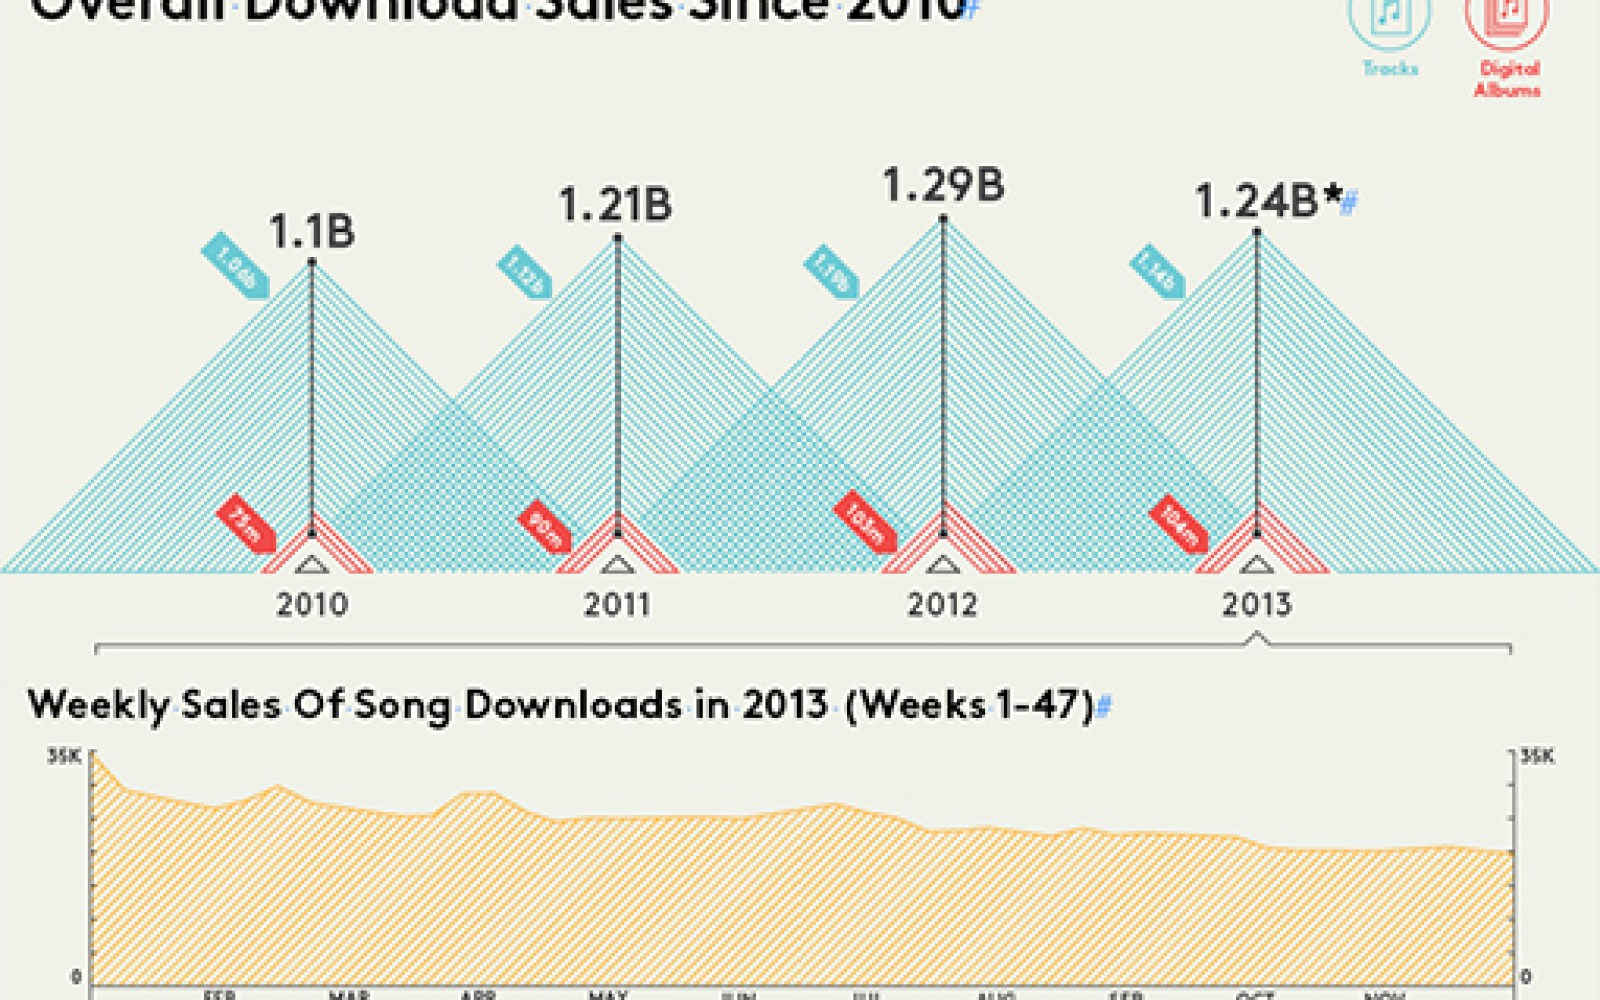 Have music downloads hit their peak, with streaming taking over?